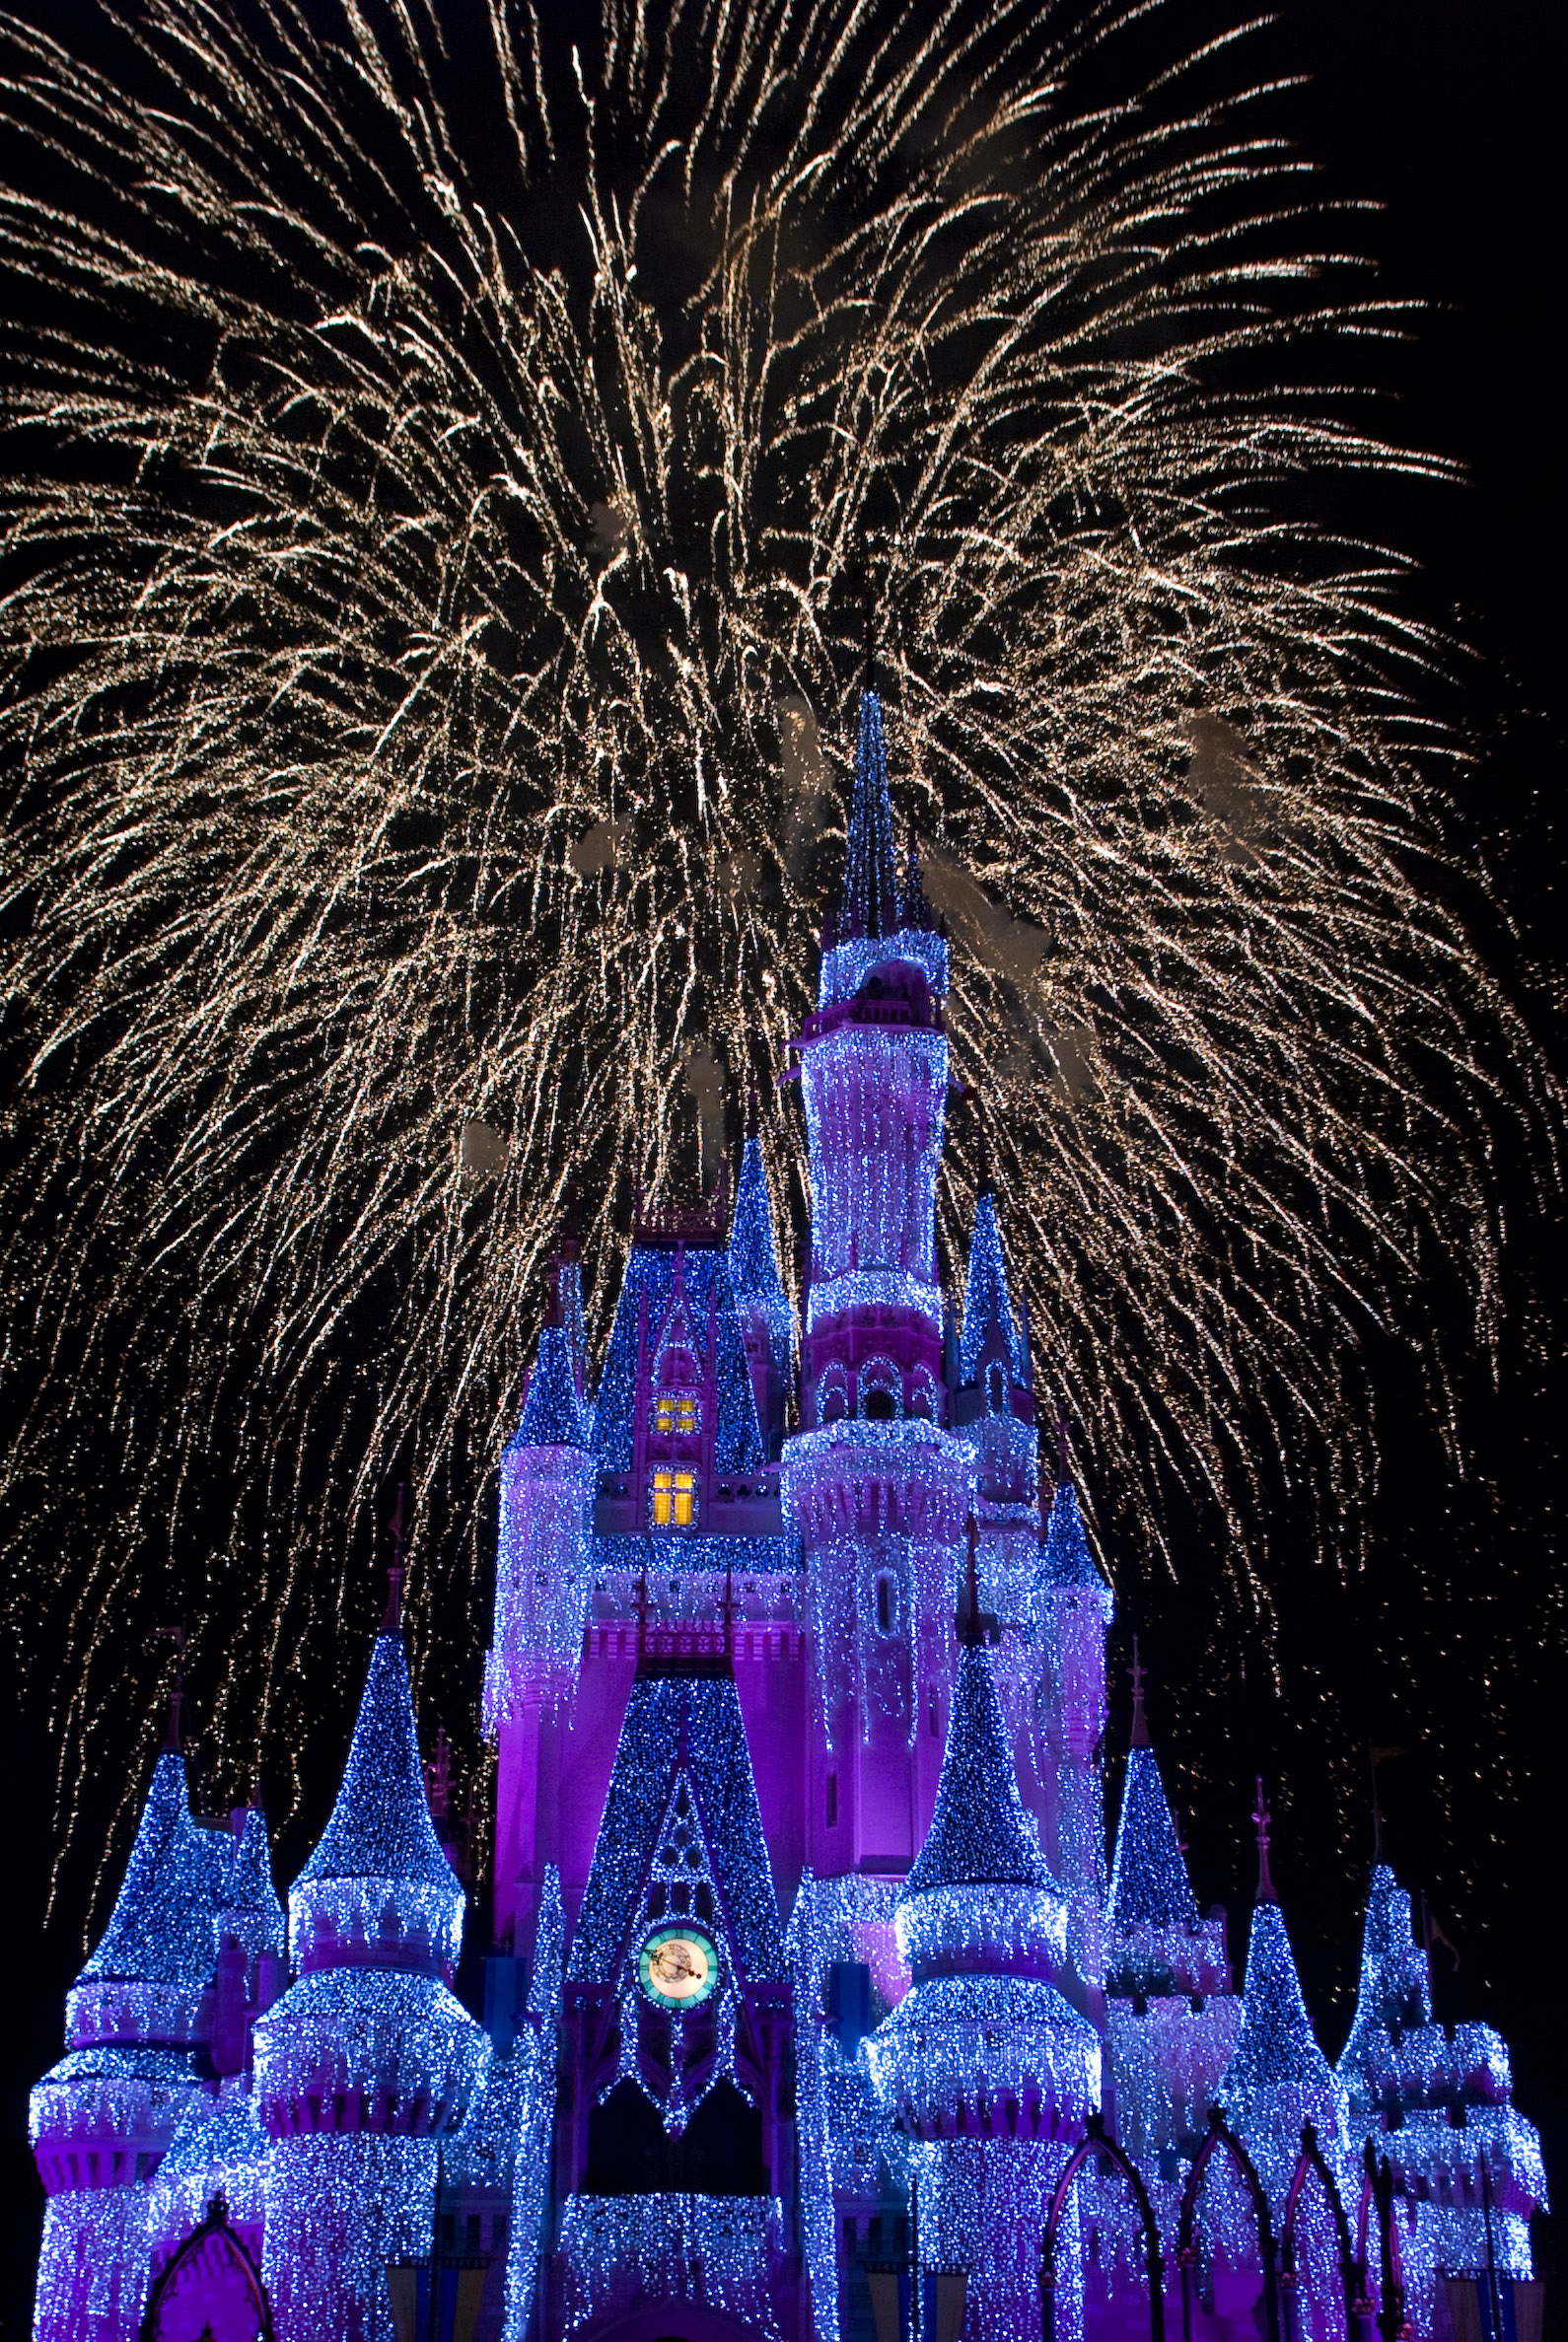 Cheap Disney Vacations All Inclusive